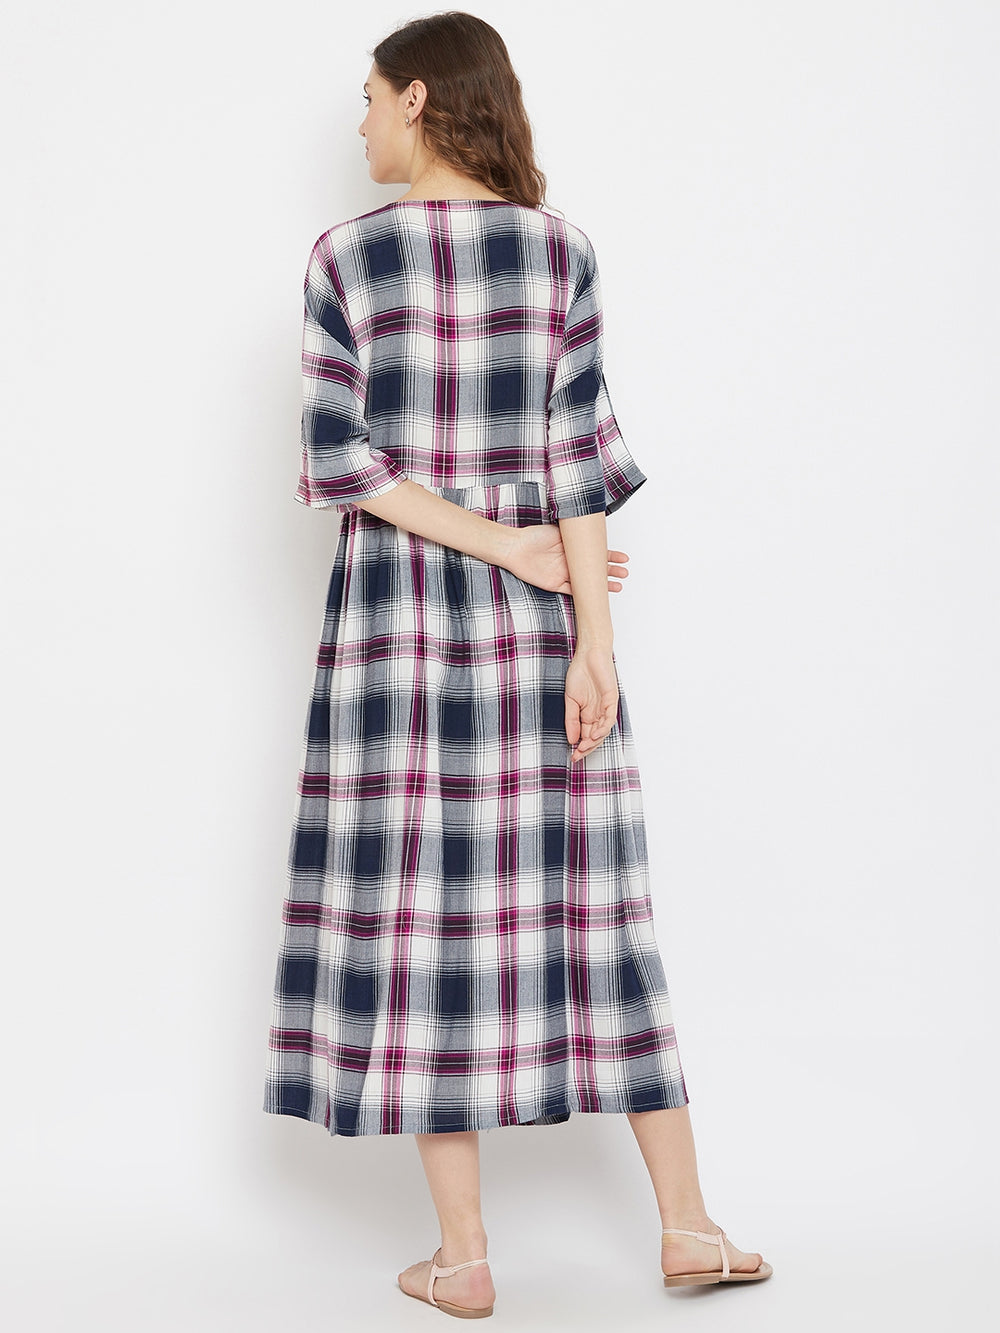 Multi Coloured Checkered Cotton Maternity Ankle Length Dress